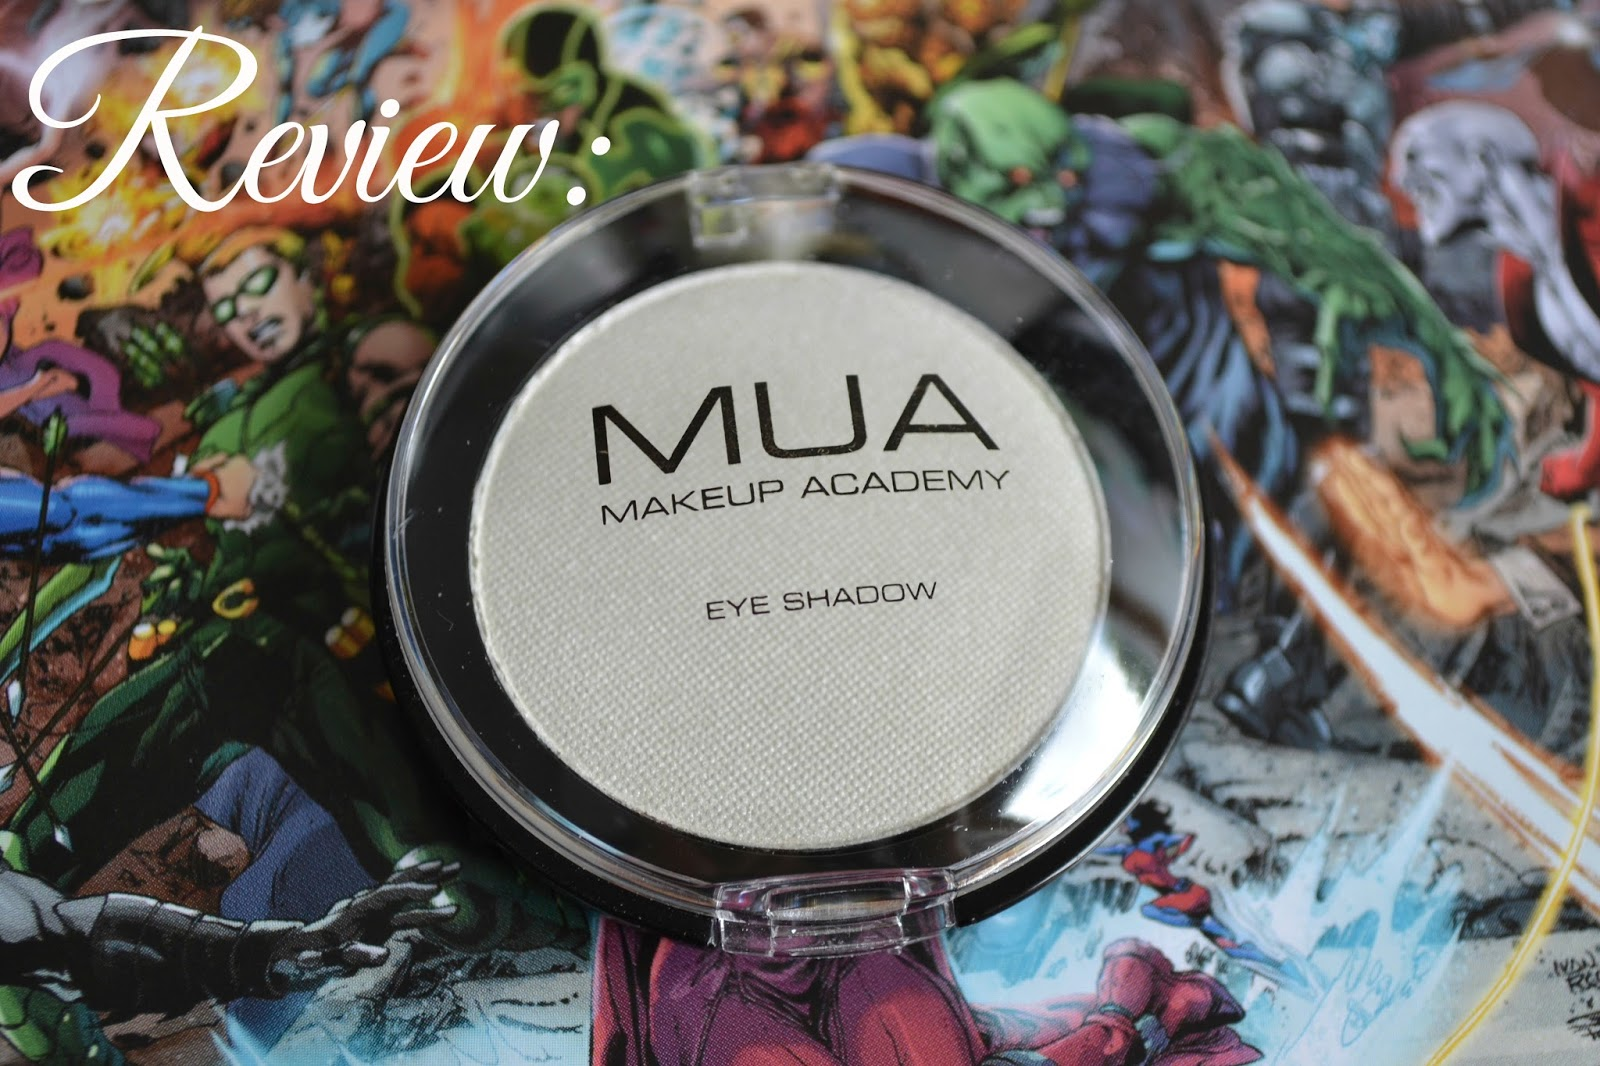 MUA Pearl Eyeshadow in Shade 2